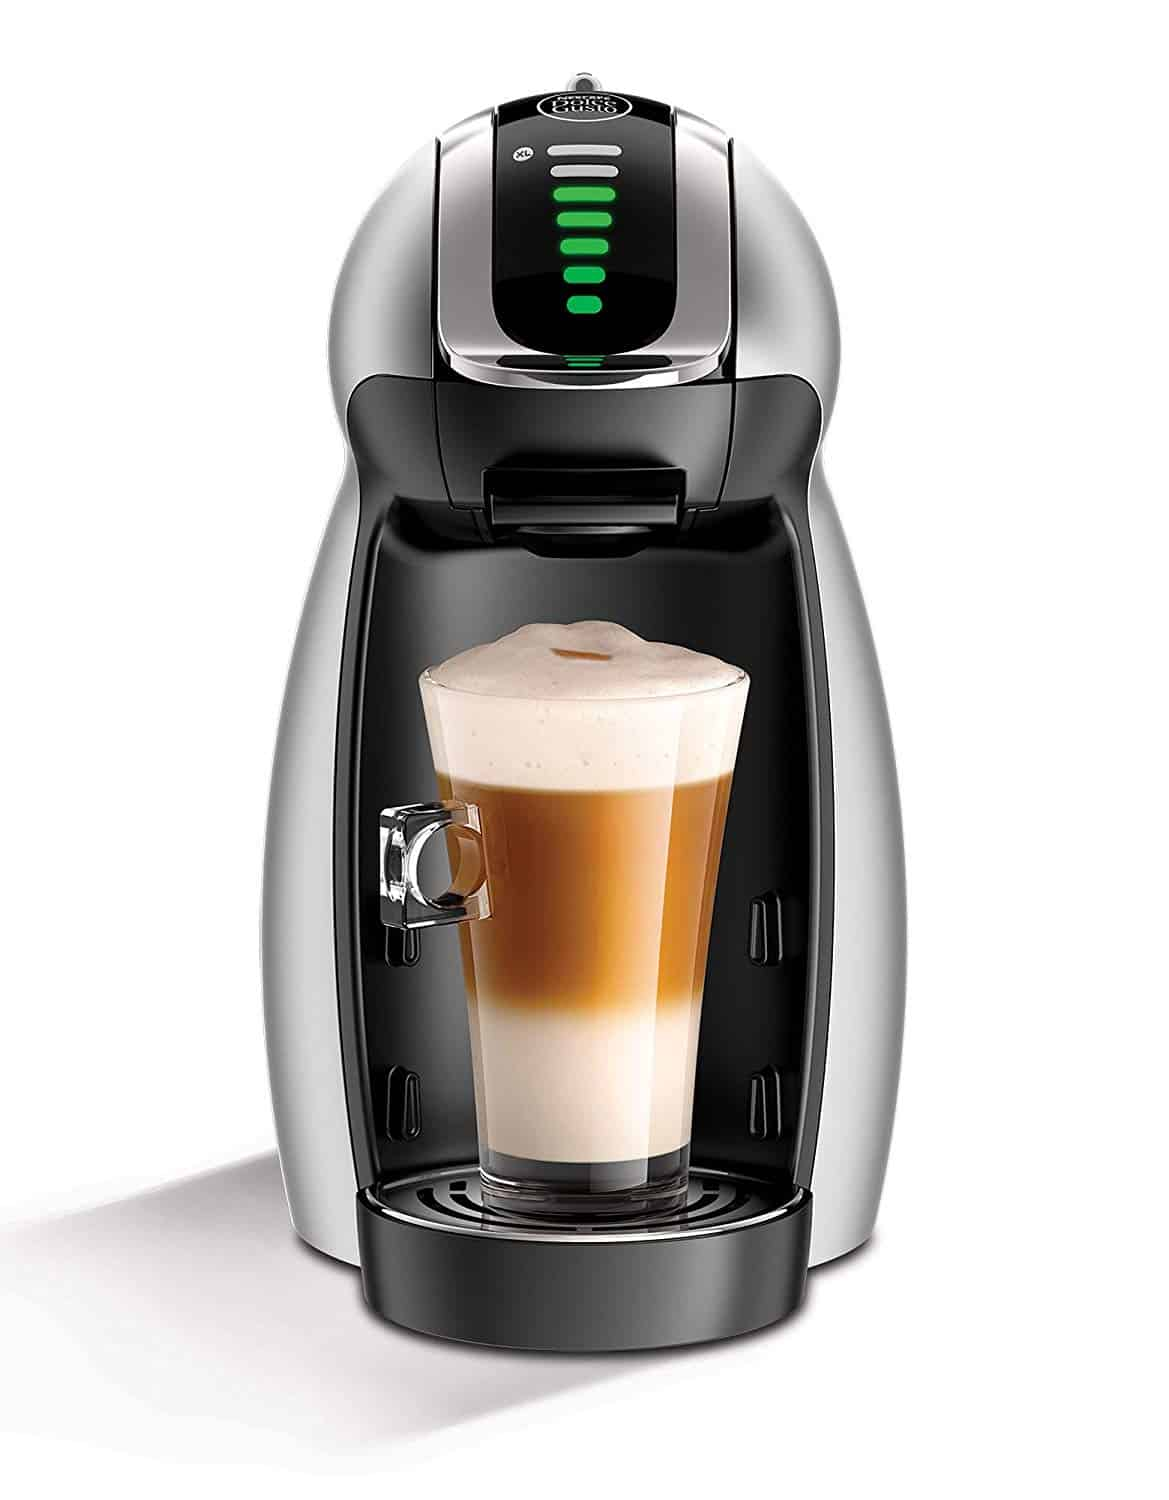 NESCAFÉ Dolce Gusto Coffee Machine, Genio 2, Espresso, Cappuccino and Latte Pod Machine